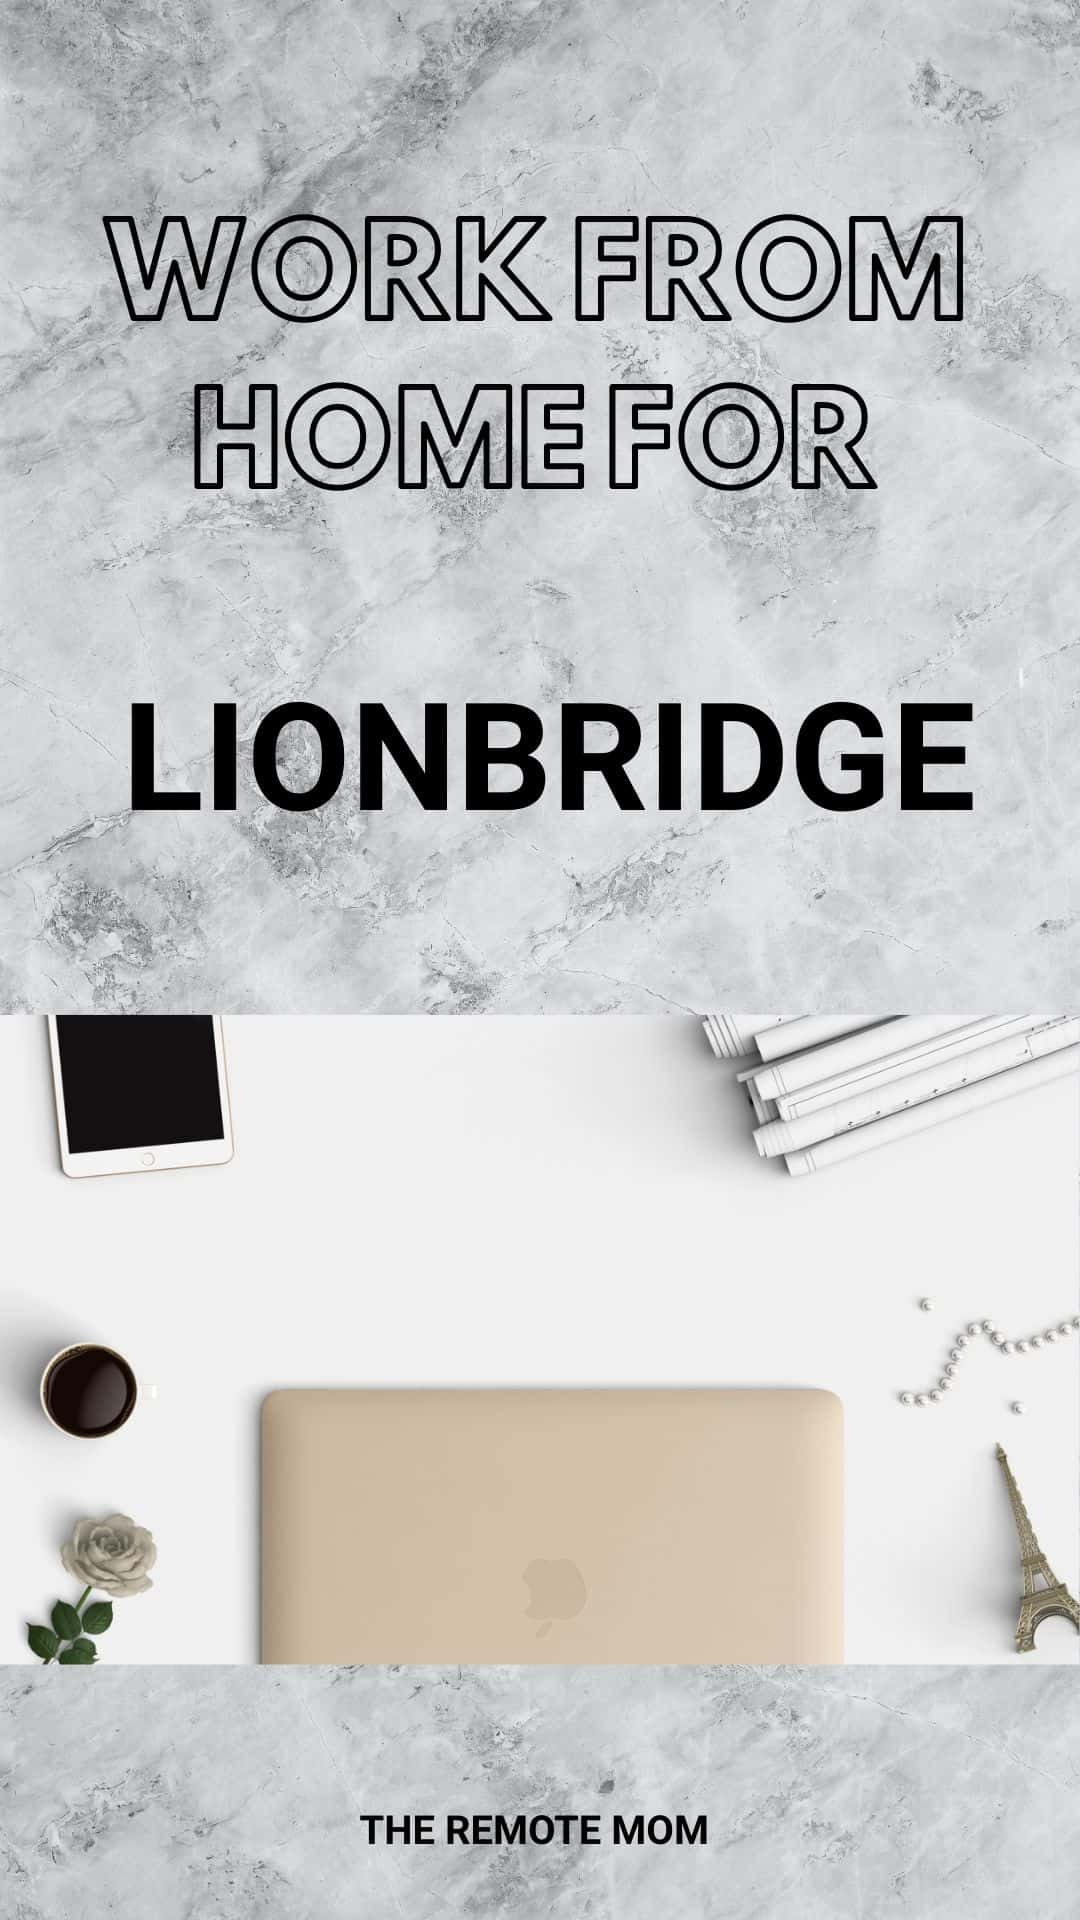 Work from Home for Lionbridge